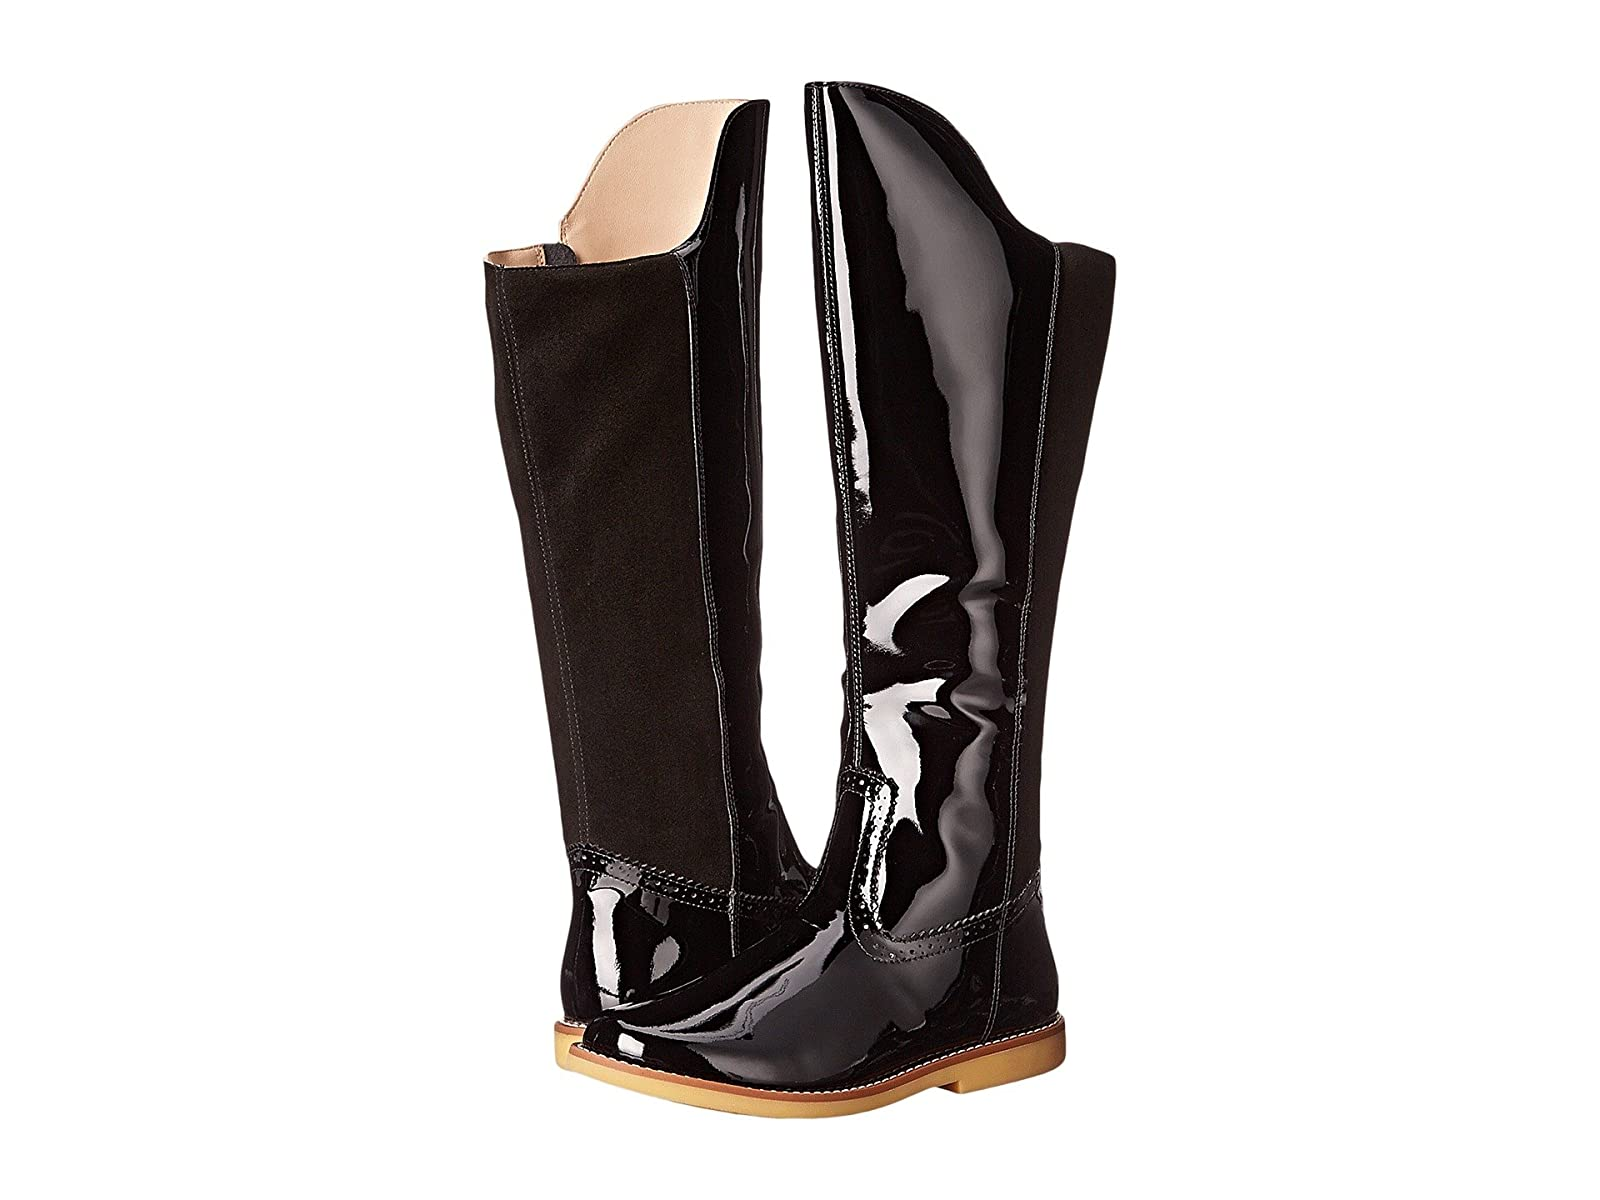 Elephantito Color Block Tall Boot (Toddler/Little Kid/Big Kid)Affordable and distinctive shoes